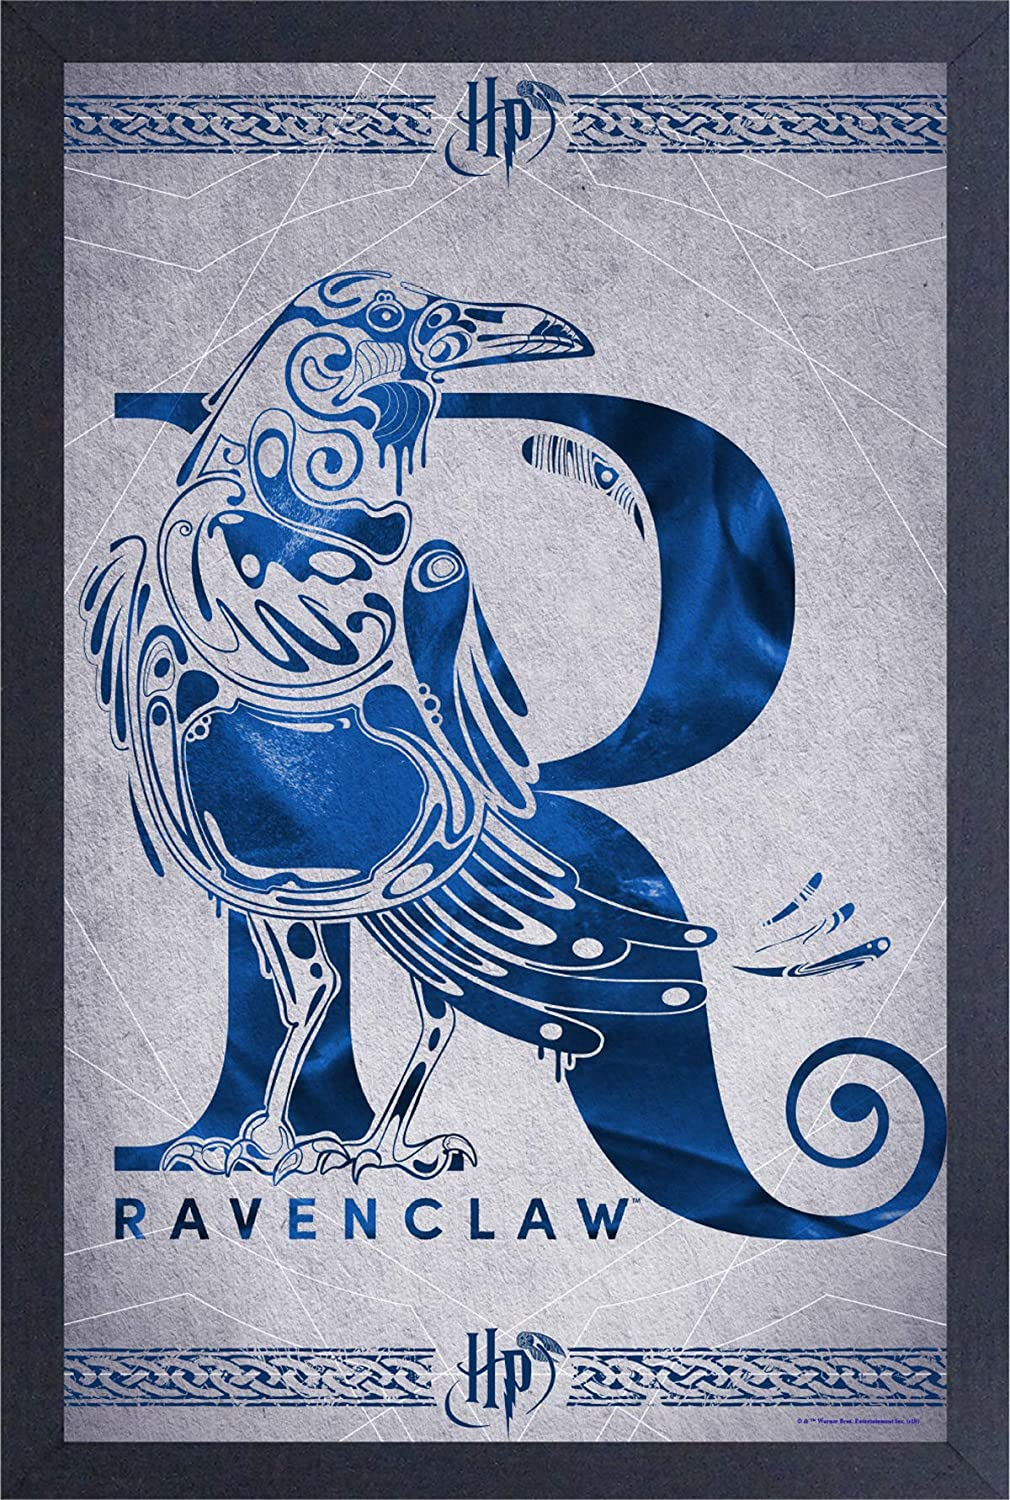 Pyramid America Harry Potter Ravenclaw Wall Poster - Print with Protective Textured Coating in 13